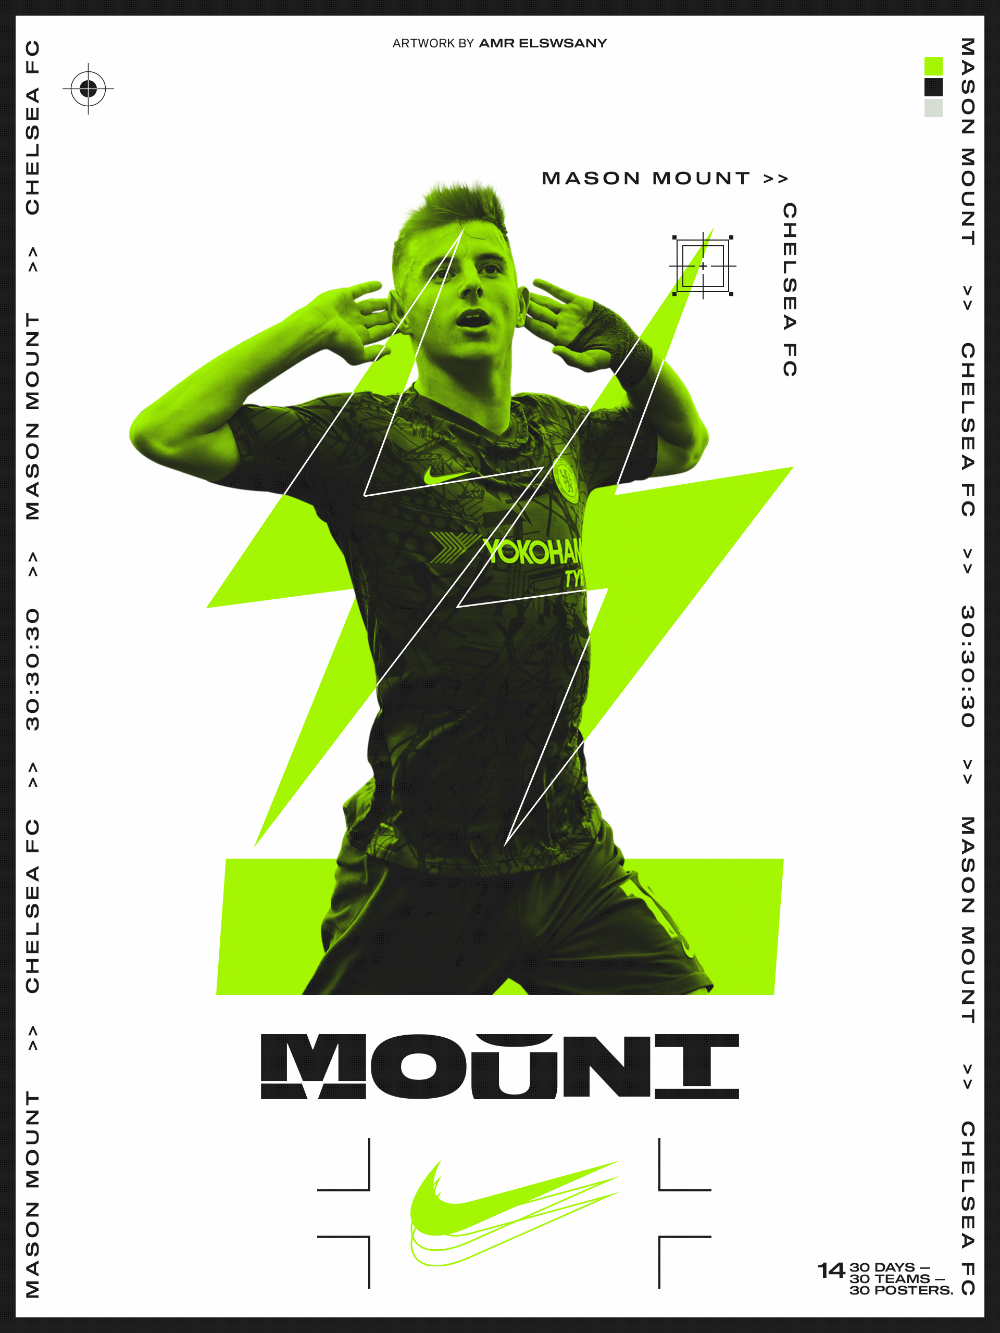 30 Days 30 Teams 30 Posters Soccer Posters On Behance In 2020 Soccer Poster Sports Graphic Design Sports Design